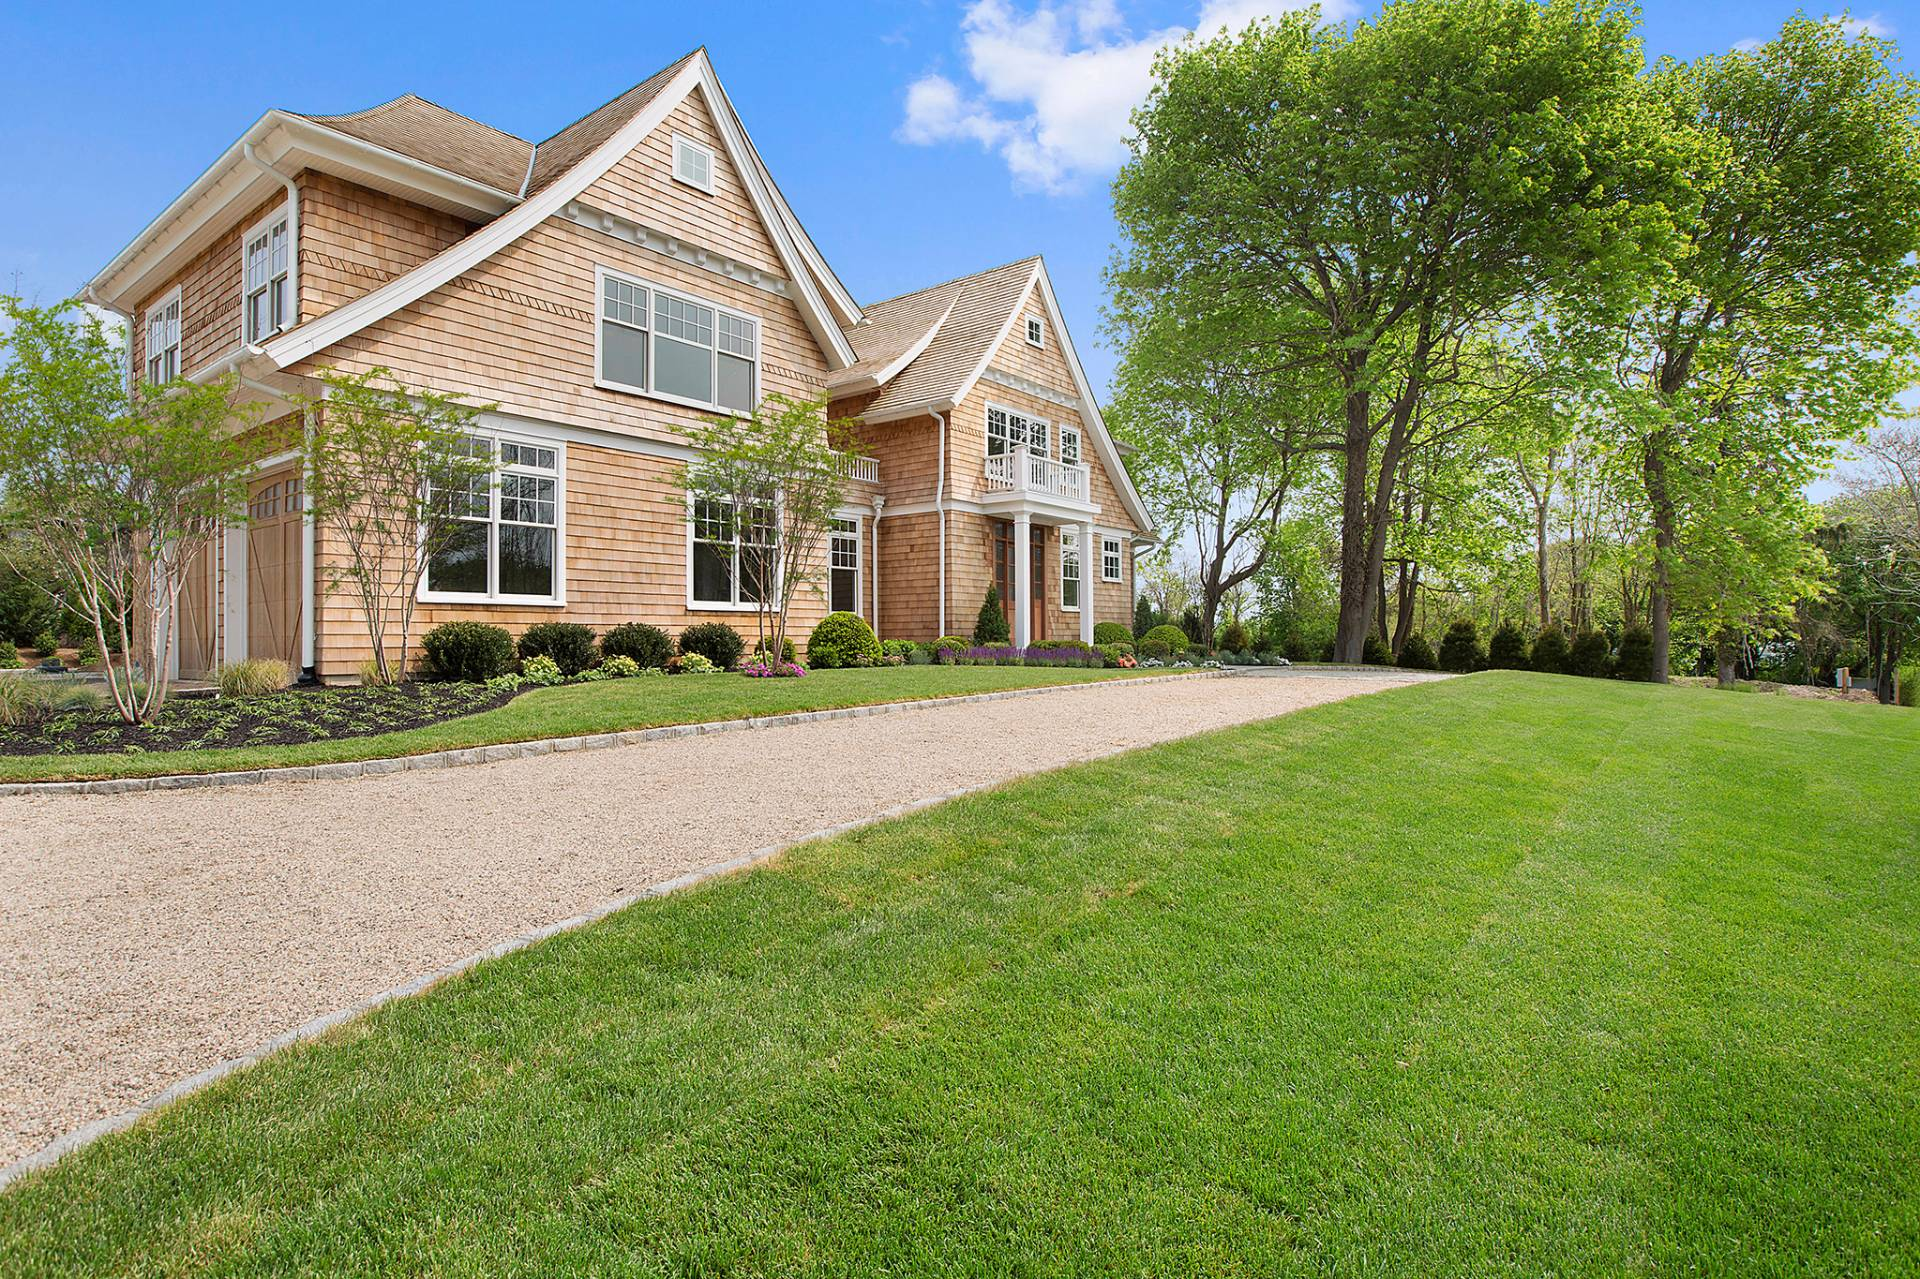 Single Family Home for Sale at Village Estate 8 Allen Court, Southampton, New York